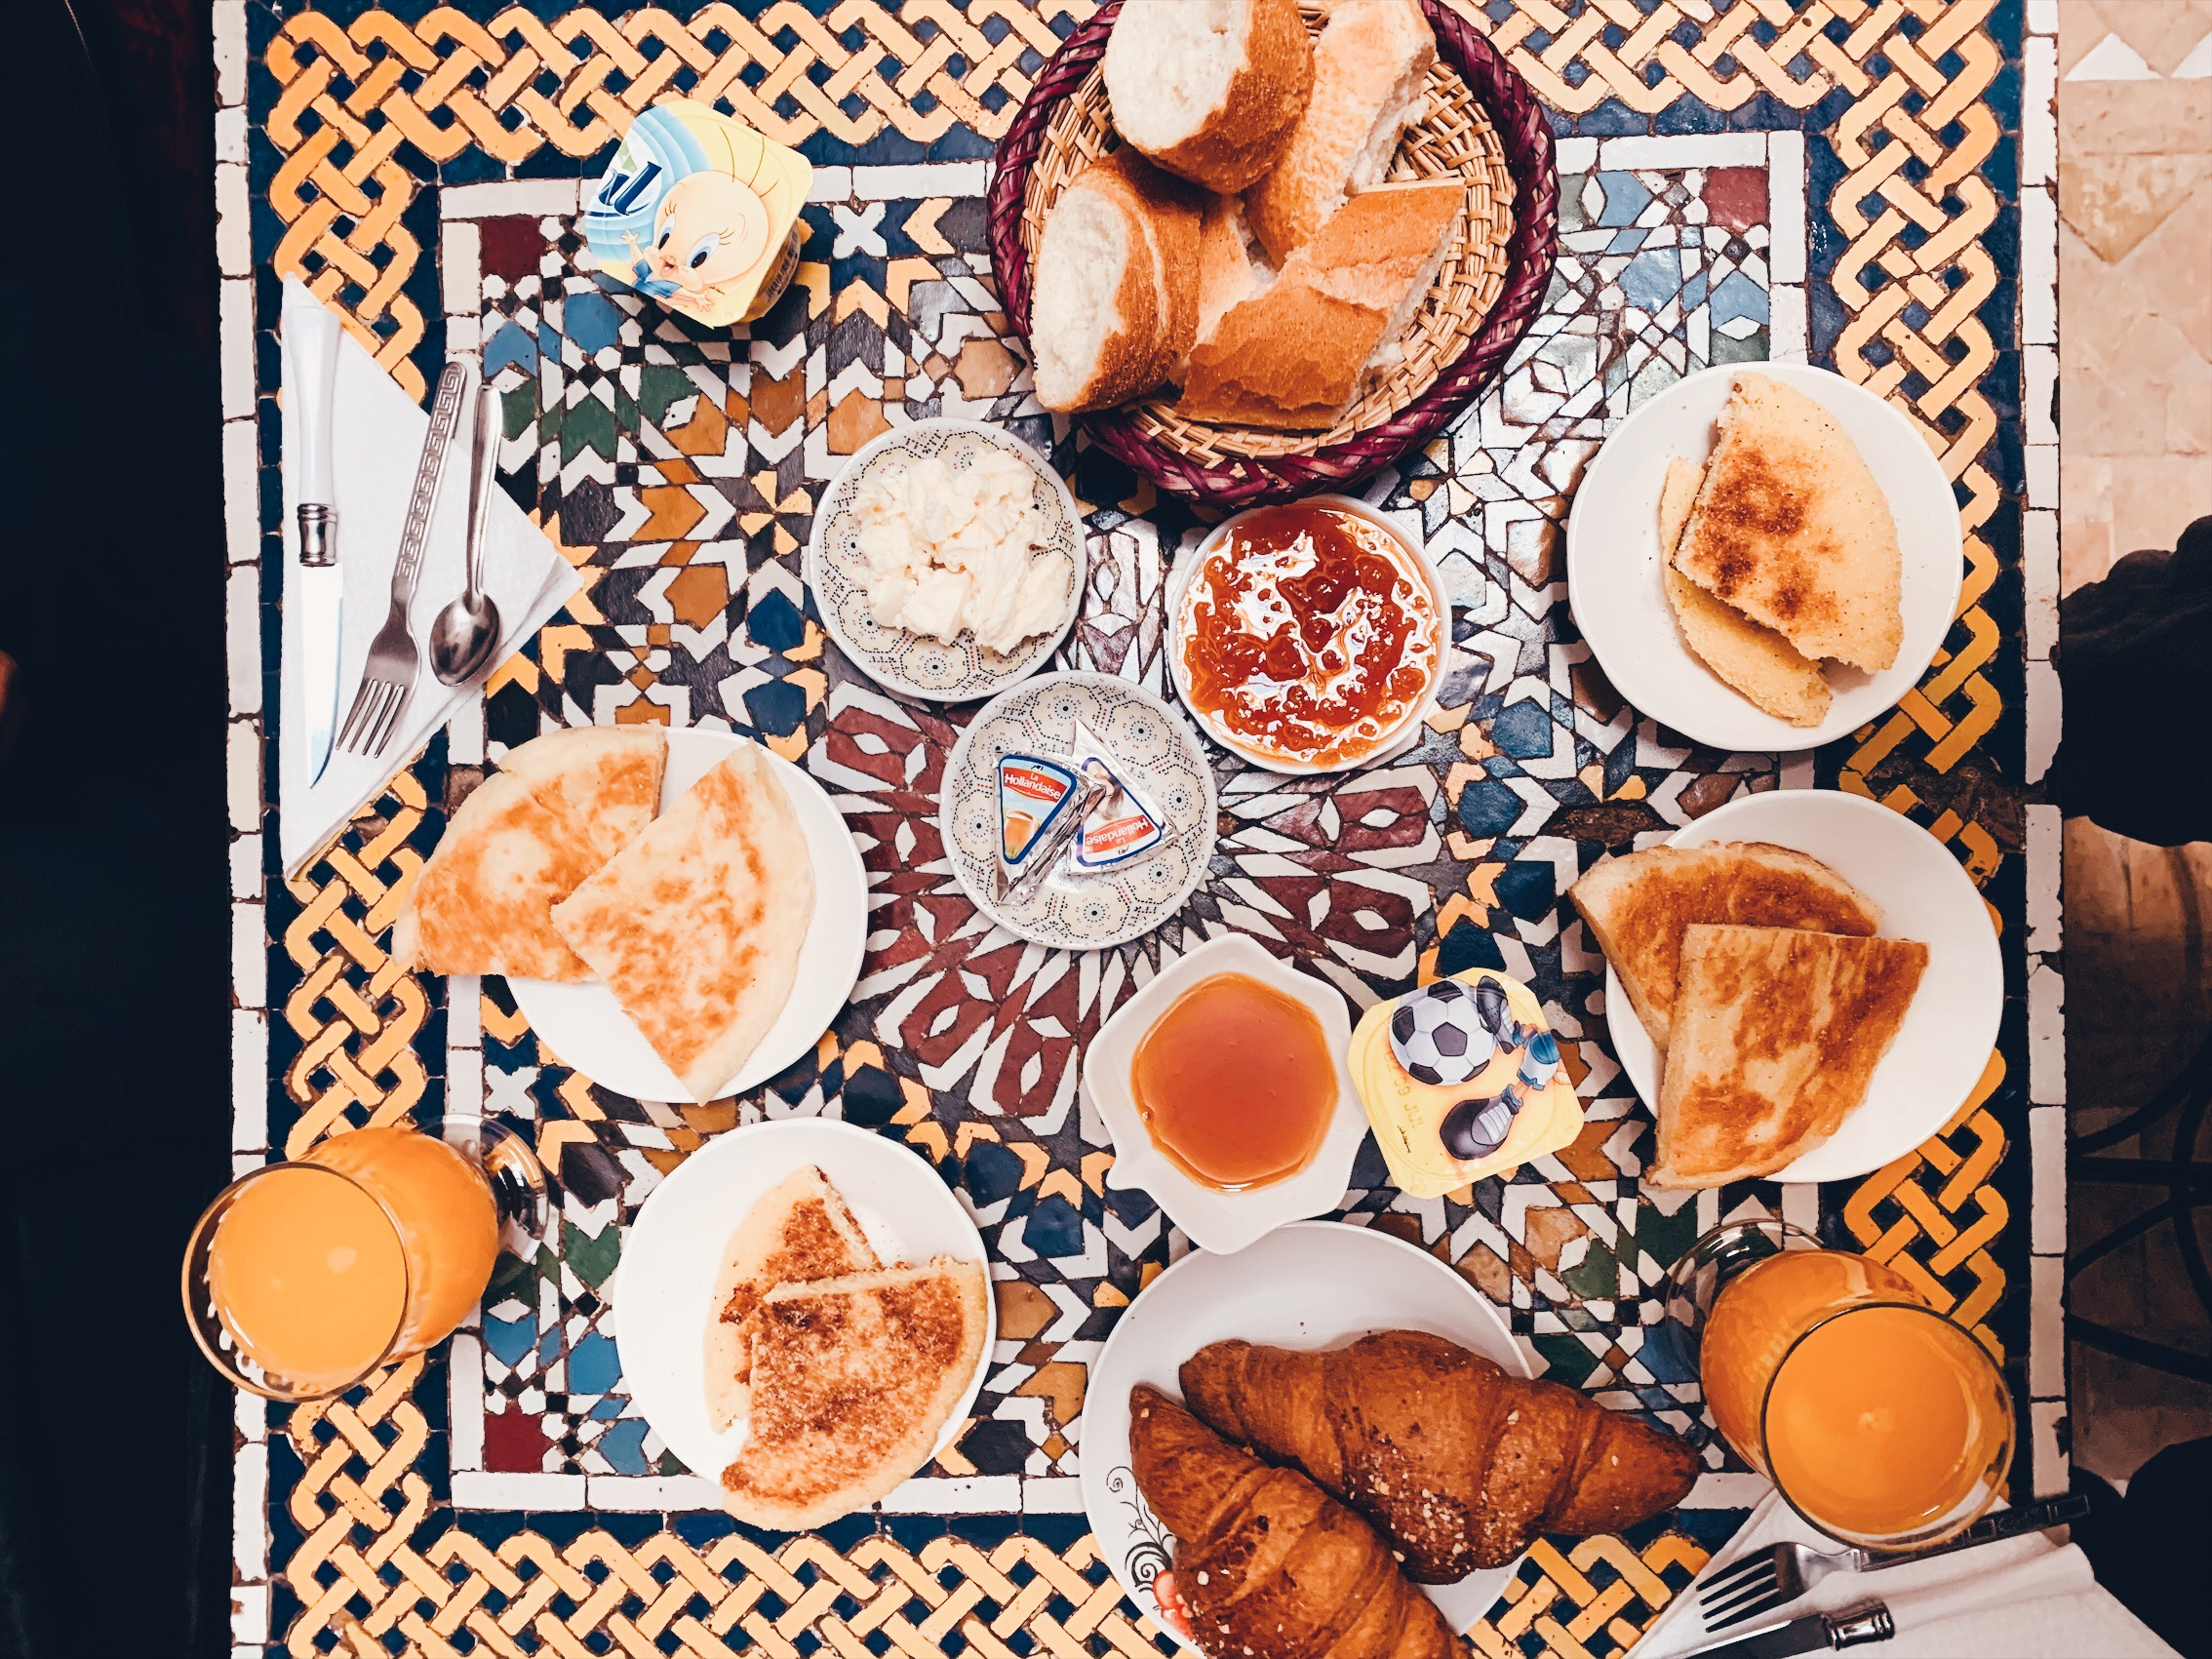 A huge breakfast is spread out on an intricate mosaic table.